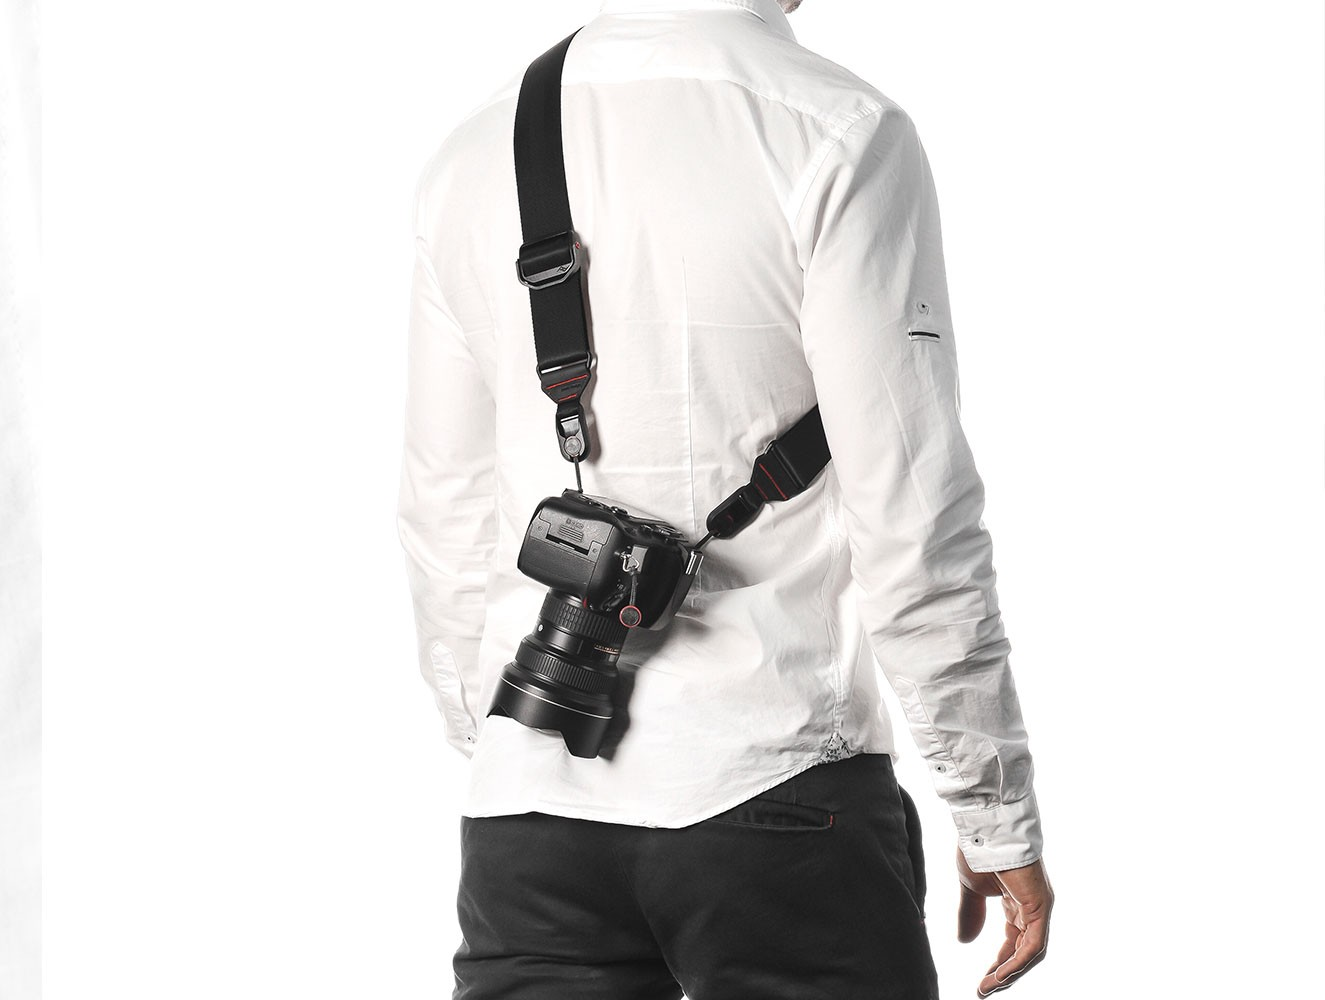 The Peak Designs system lets you wear your camera any way you like.